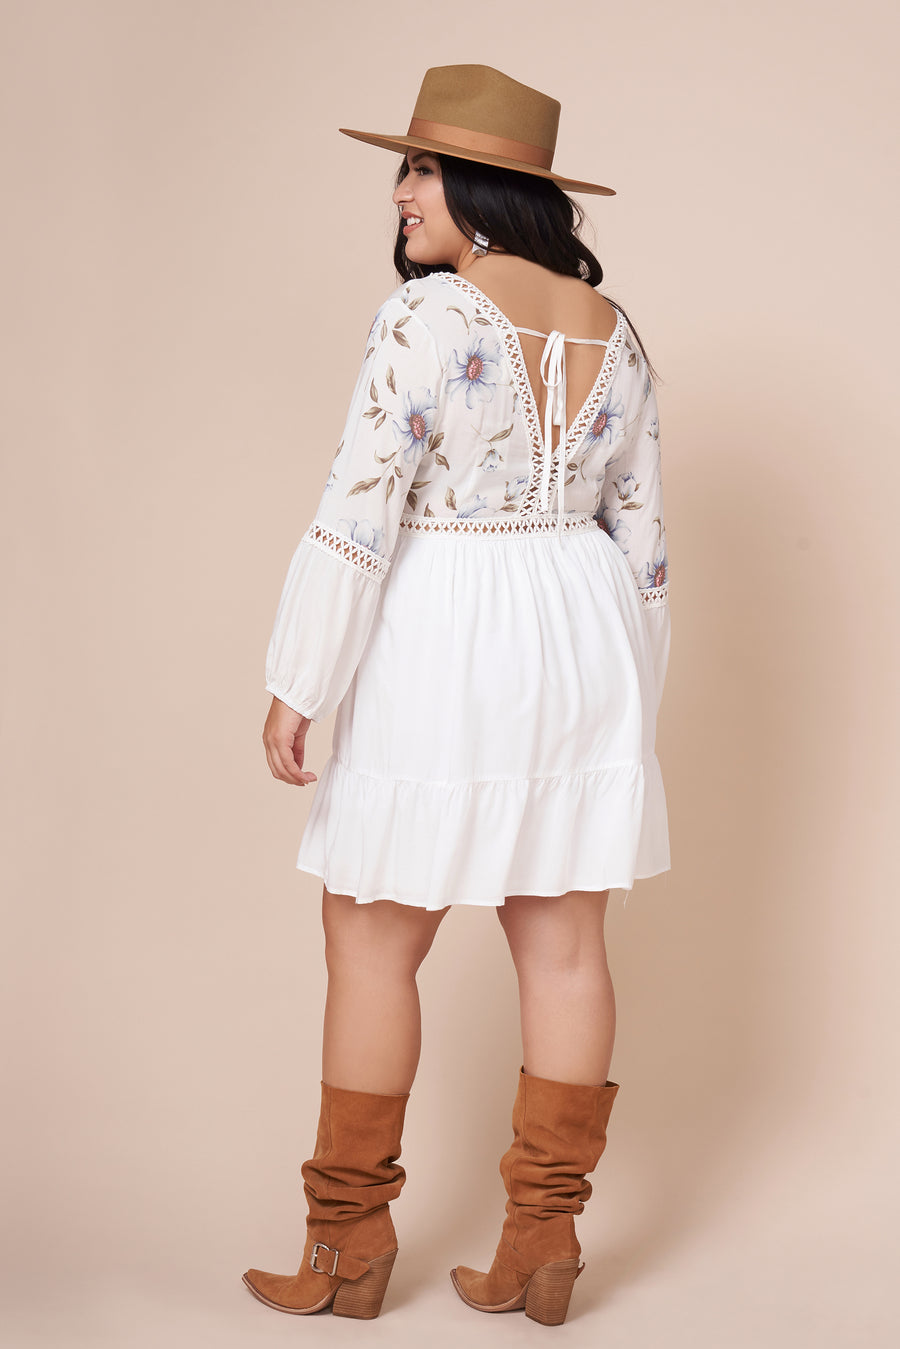 AUBREE White Floral Print Dress